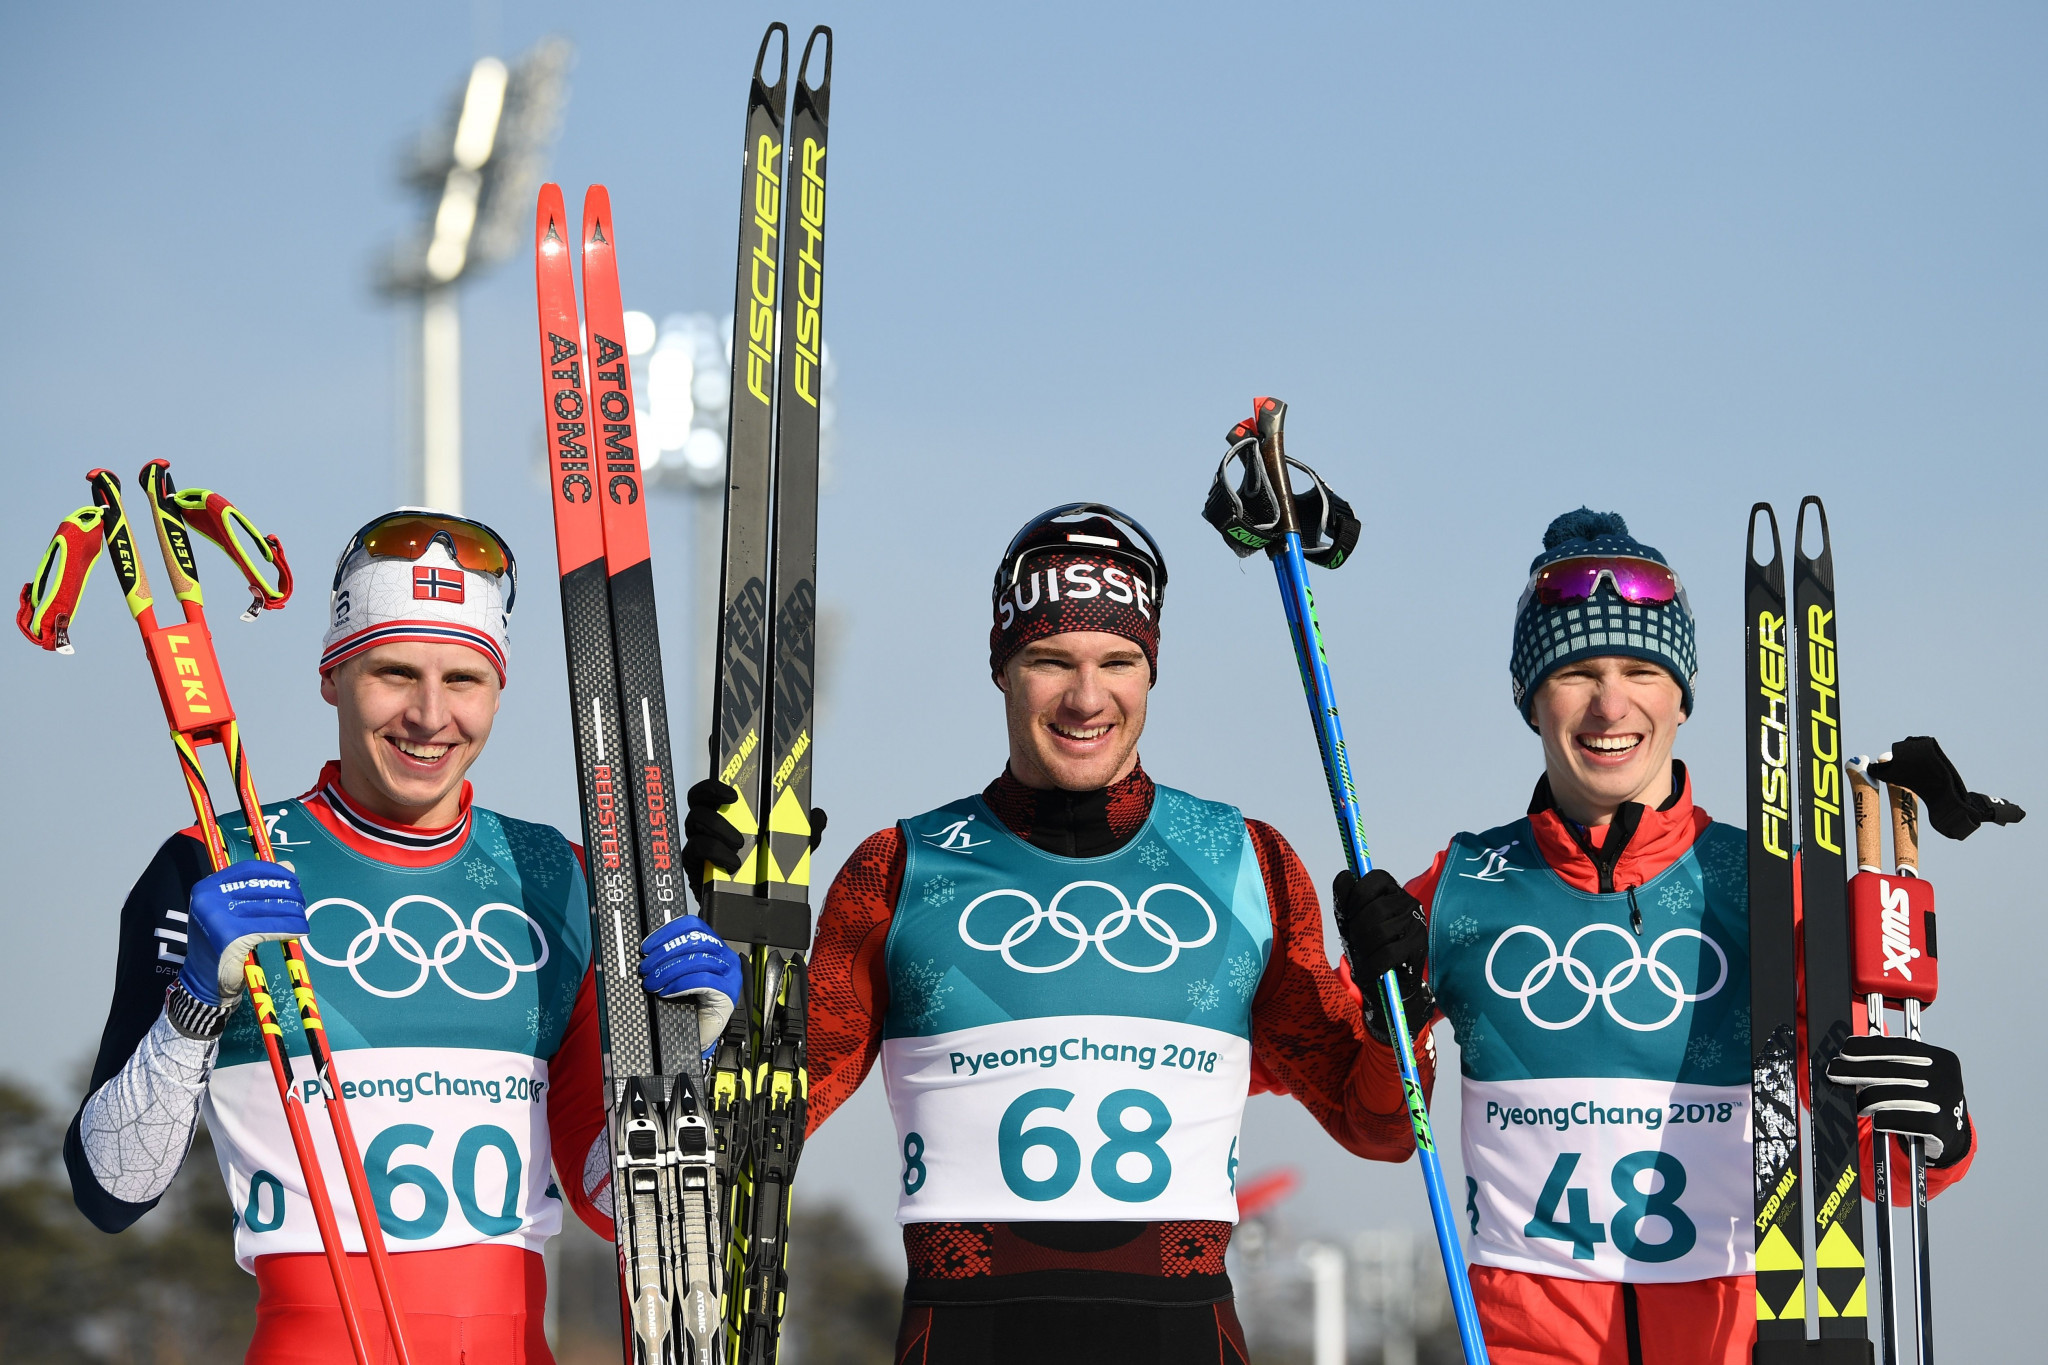 The three medal winners pose following the race today ©Getty Images